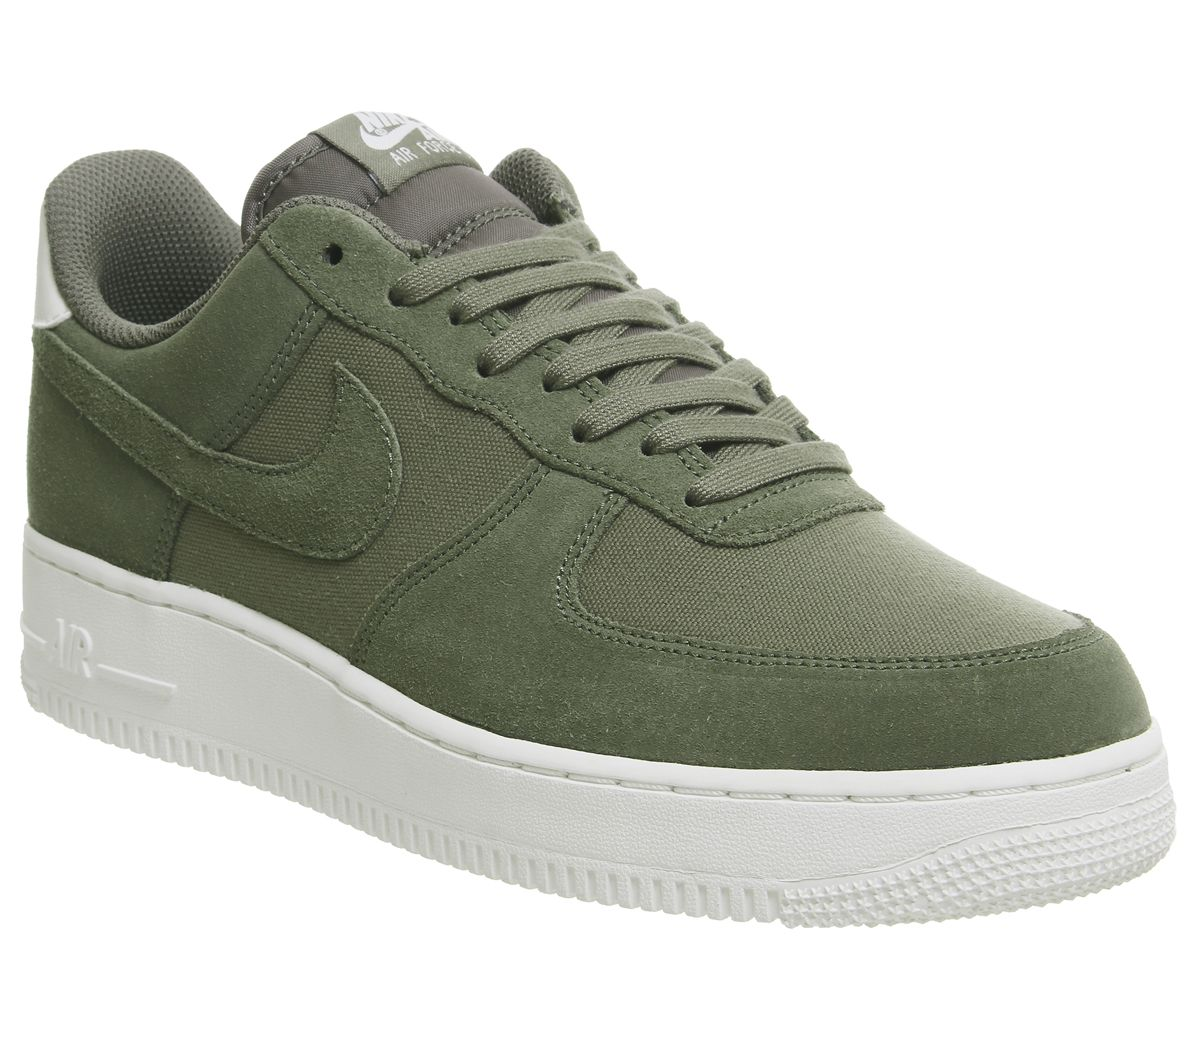 new concept 949ec f80c3 Nike Air Force 1 07 Trainers Medium Olive Sail - His trainers